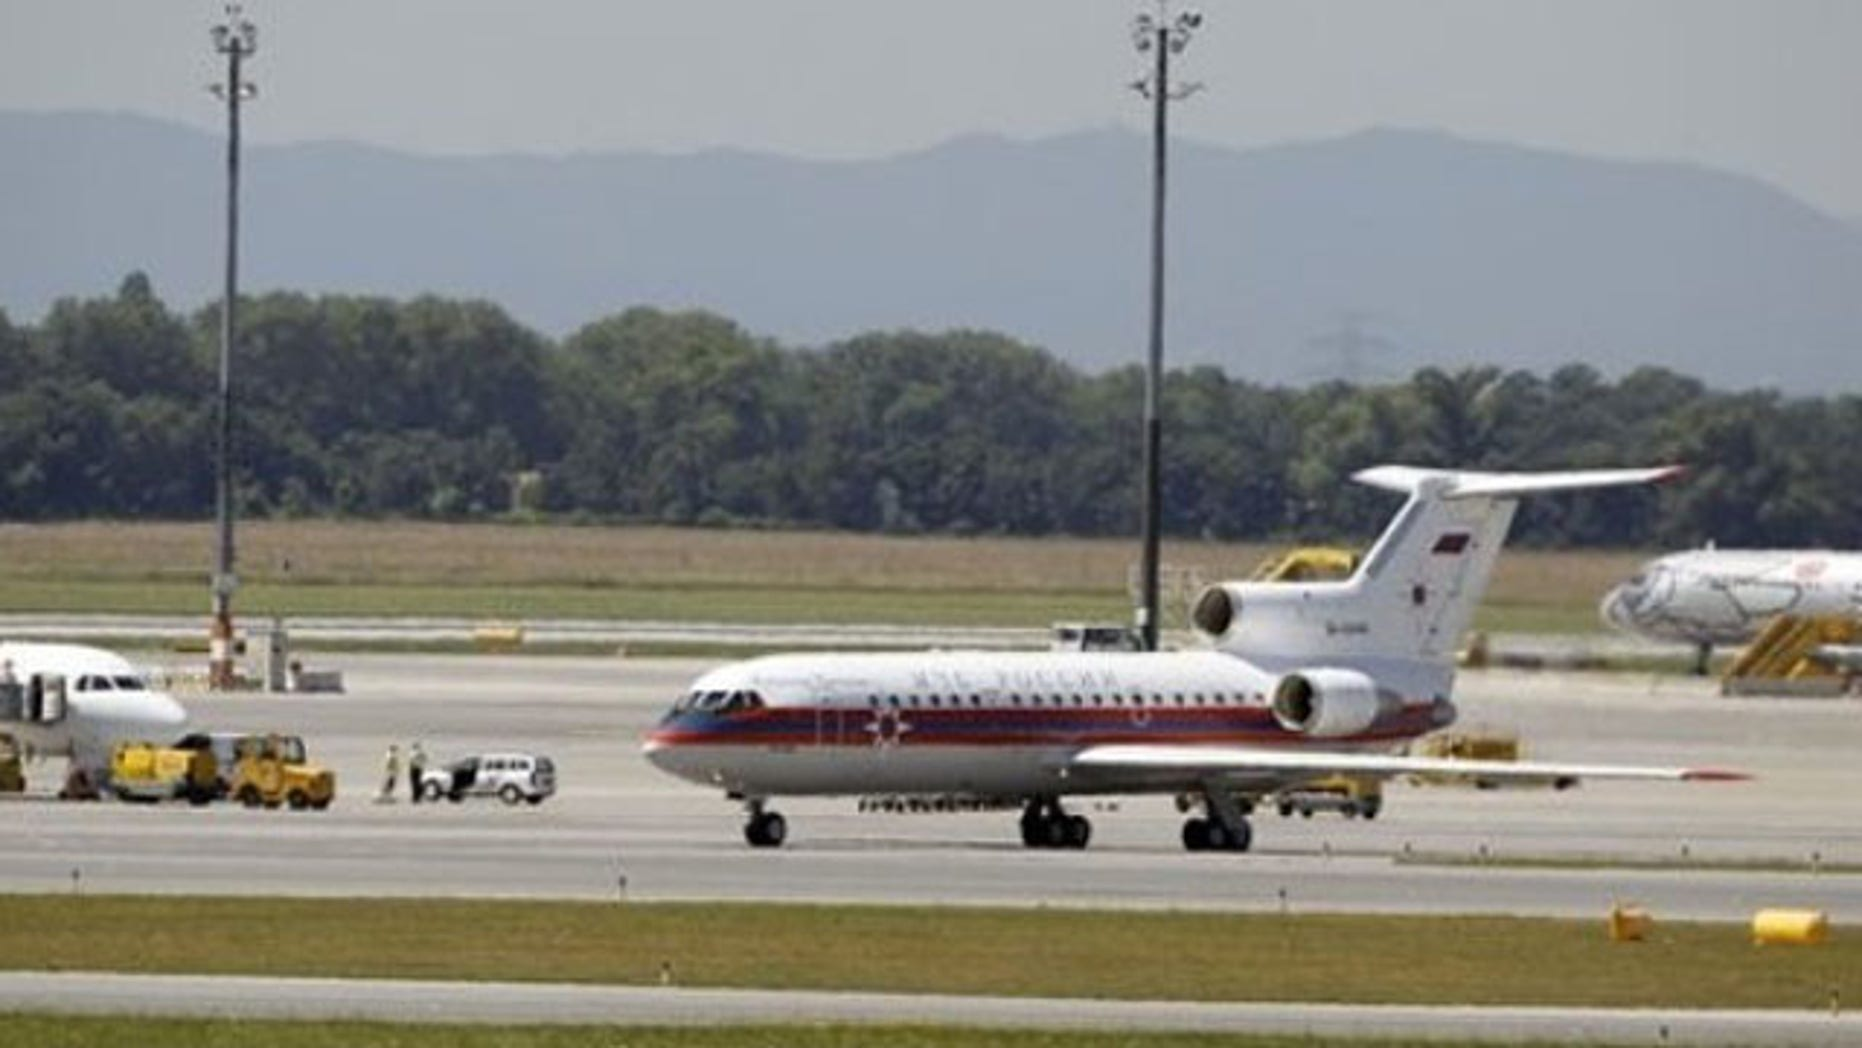 July 9: A Russian plane believed to be carrying candidates for a 14-person spy swap as part of the largest spy swap since the Cold War is parked on the tarmac at Vienna's Schwechat airport (AP).